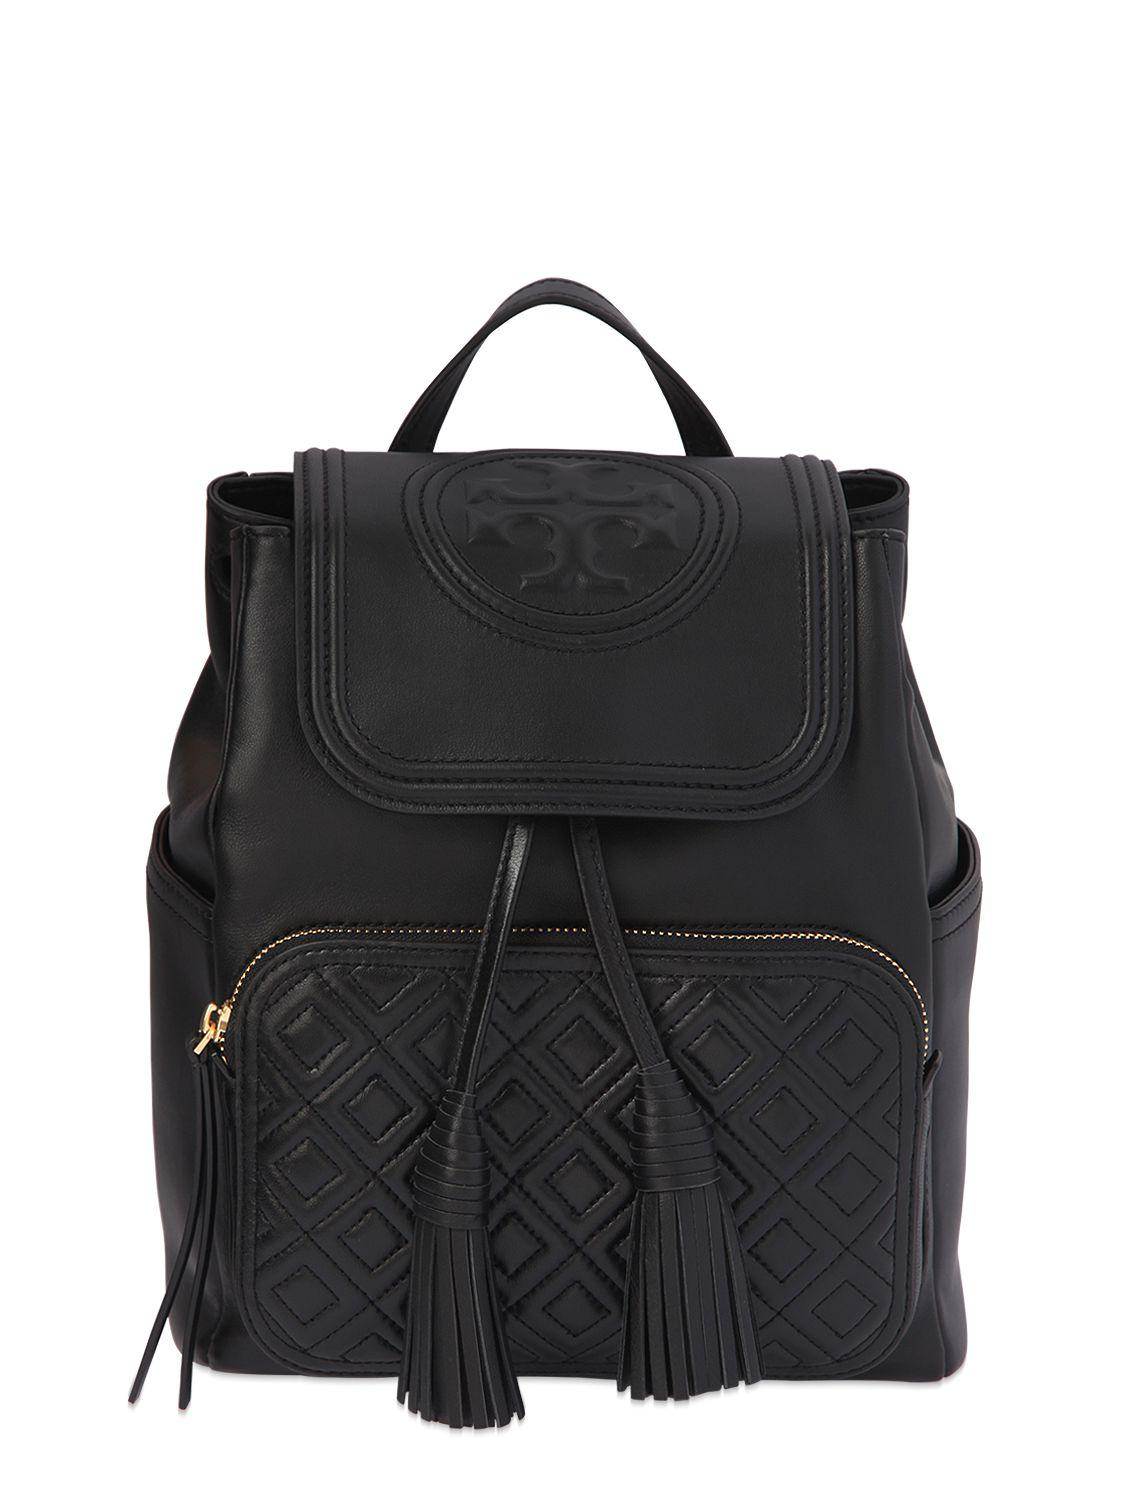 7cd6d283b2b4 Tory Burch Fleming Quilted Leather Backpack in Black - Lyst